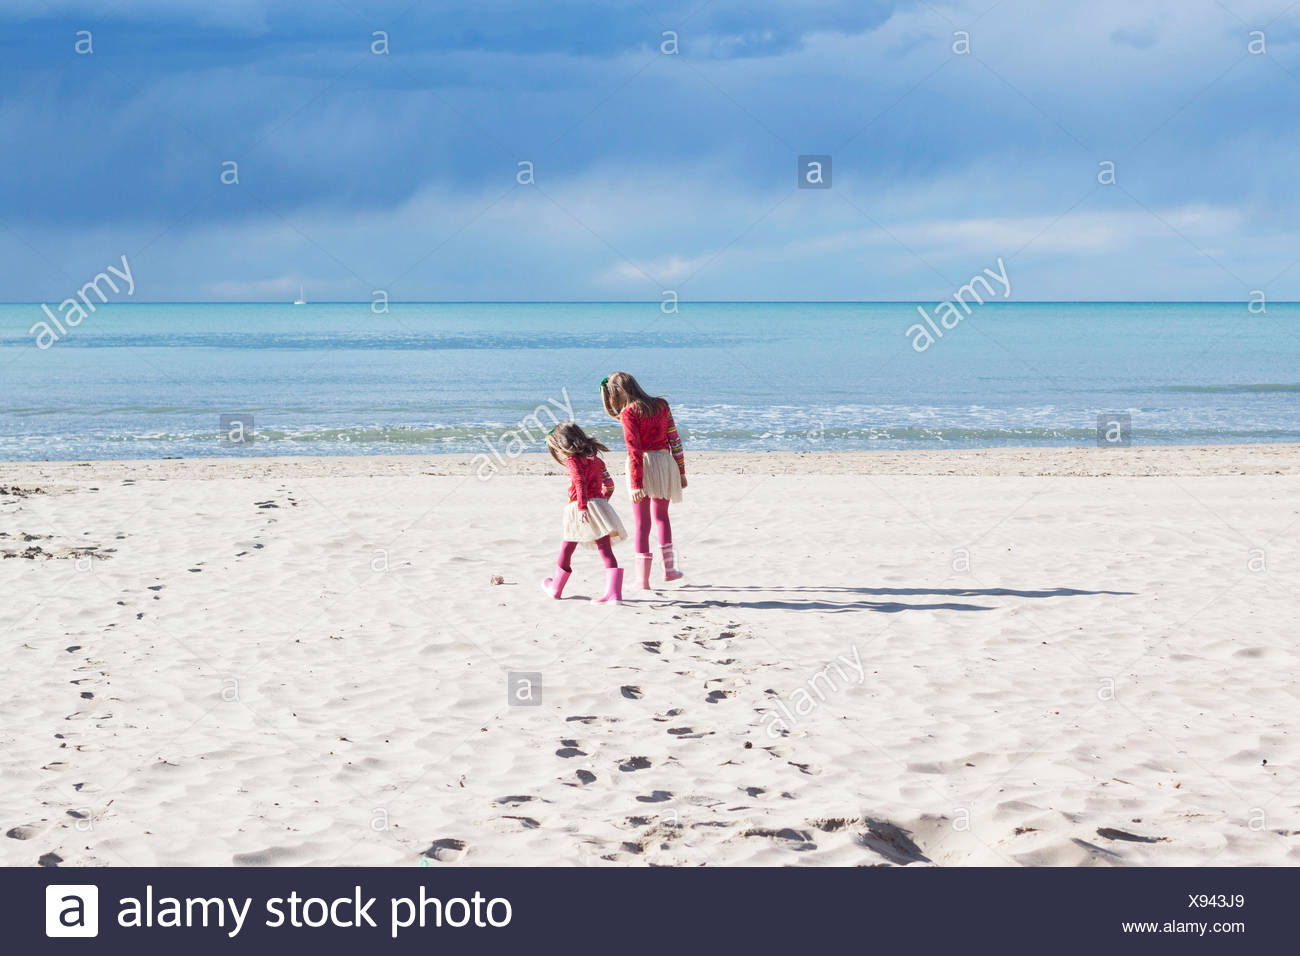 Rear view of two girls walking on the beach - Stock Image